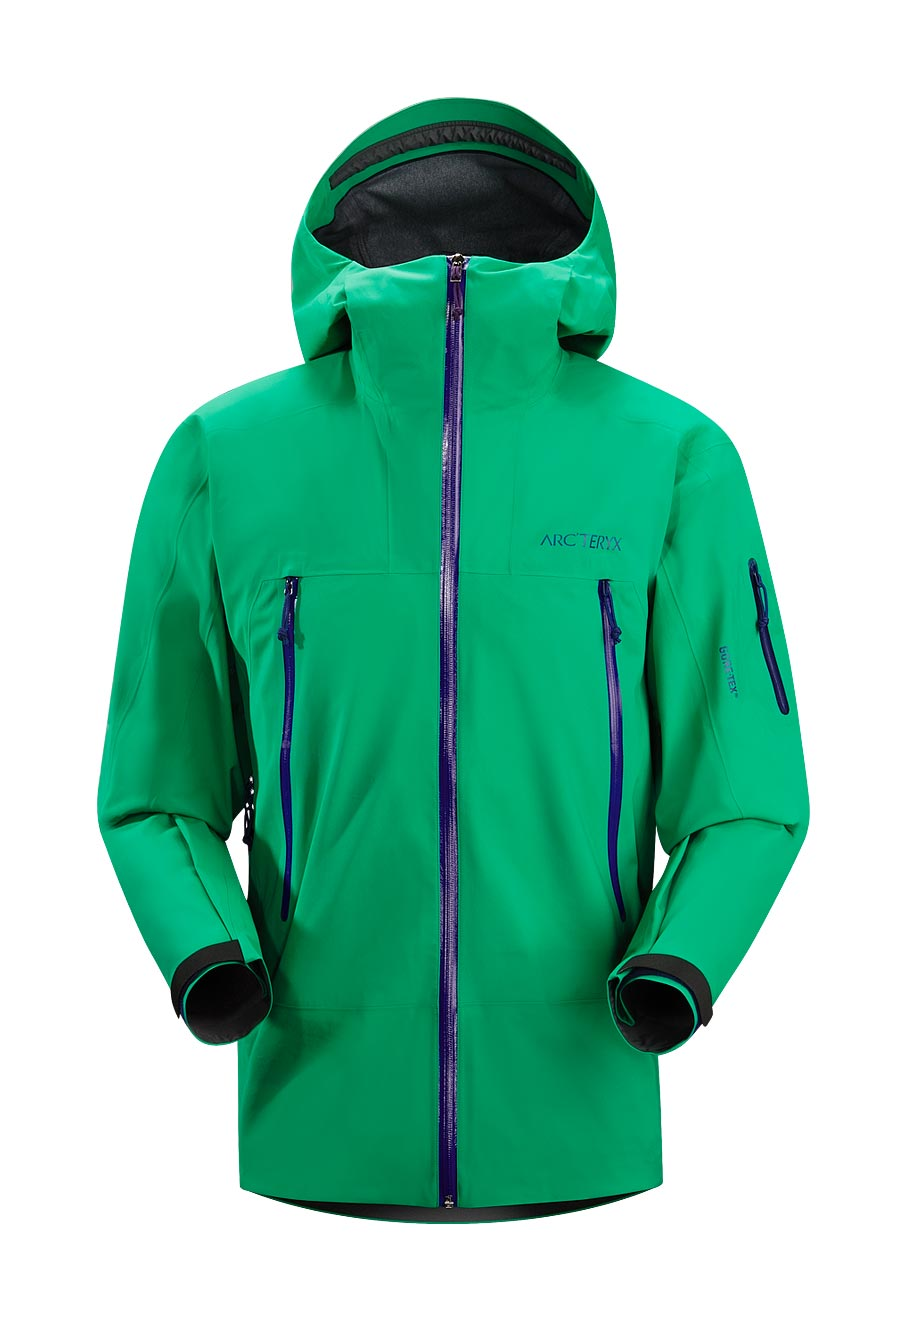 Arcteryx Jackets Men Green Light Sabre SV Jacket